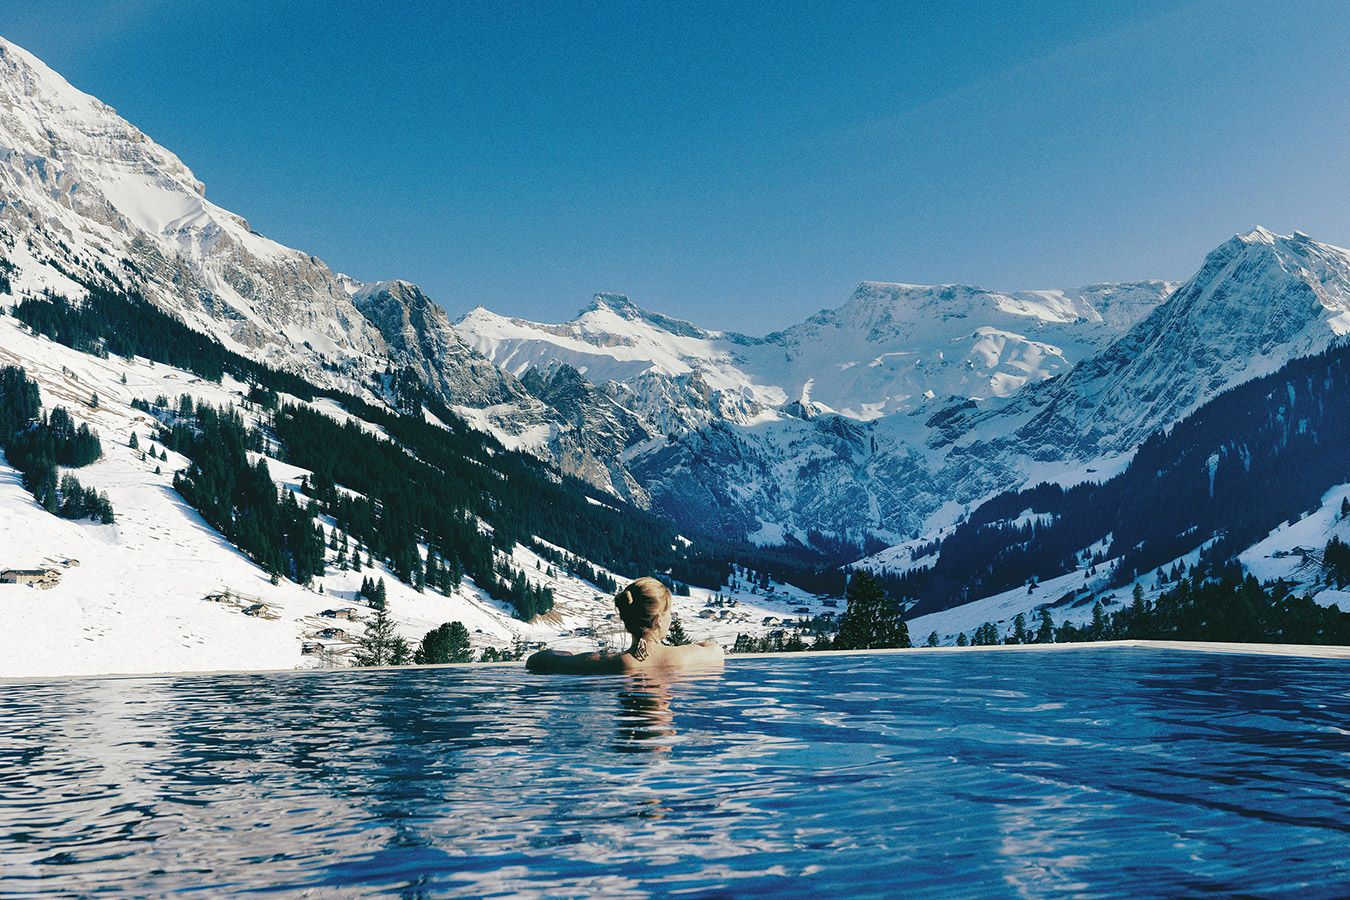 Best Hotel In Switzerland With Infinity Pool The Cambrian Switzerland Dream Hotels Switzerland Hotels Amazing Swimming Pools